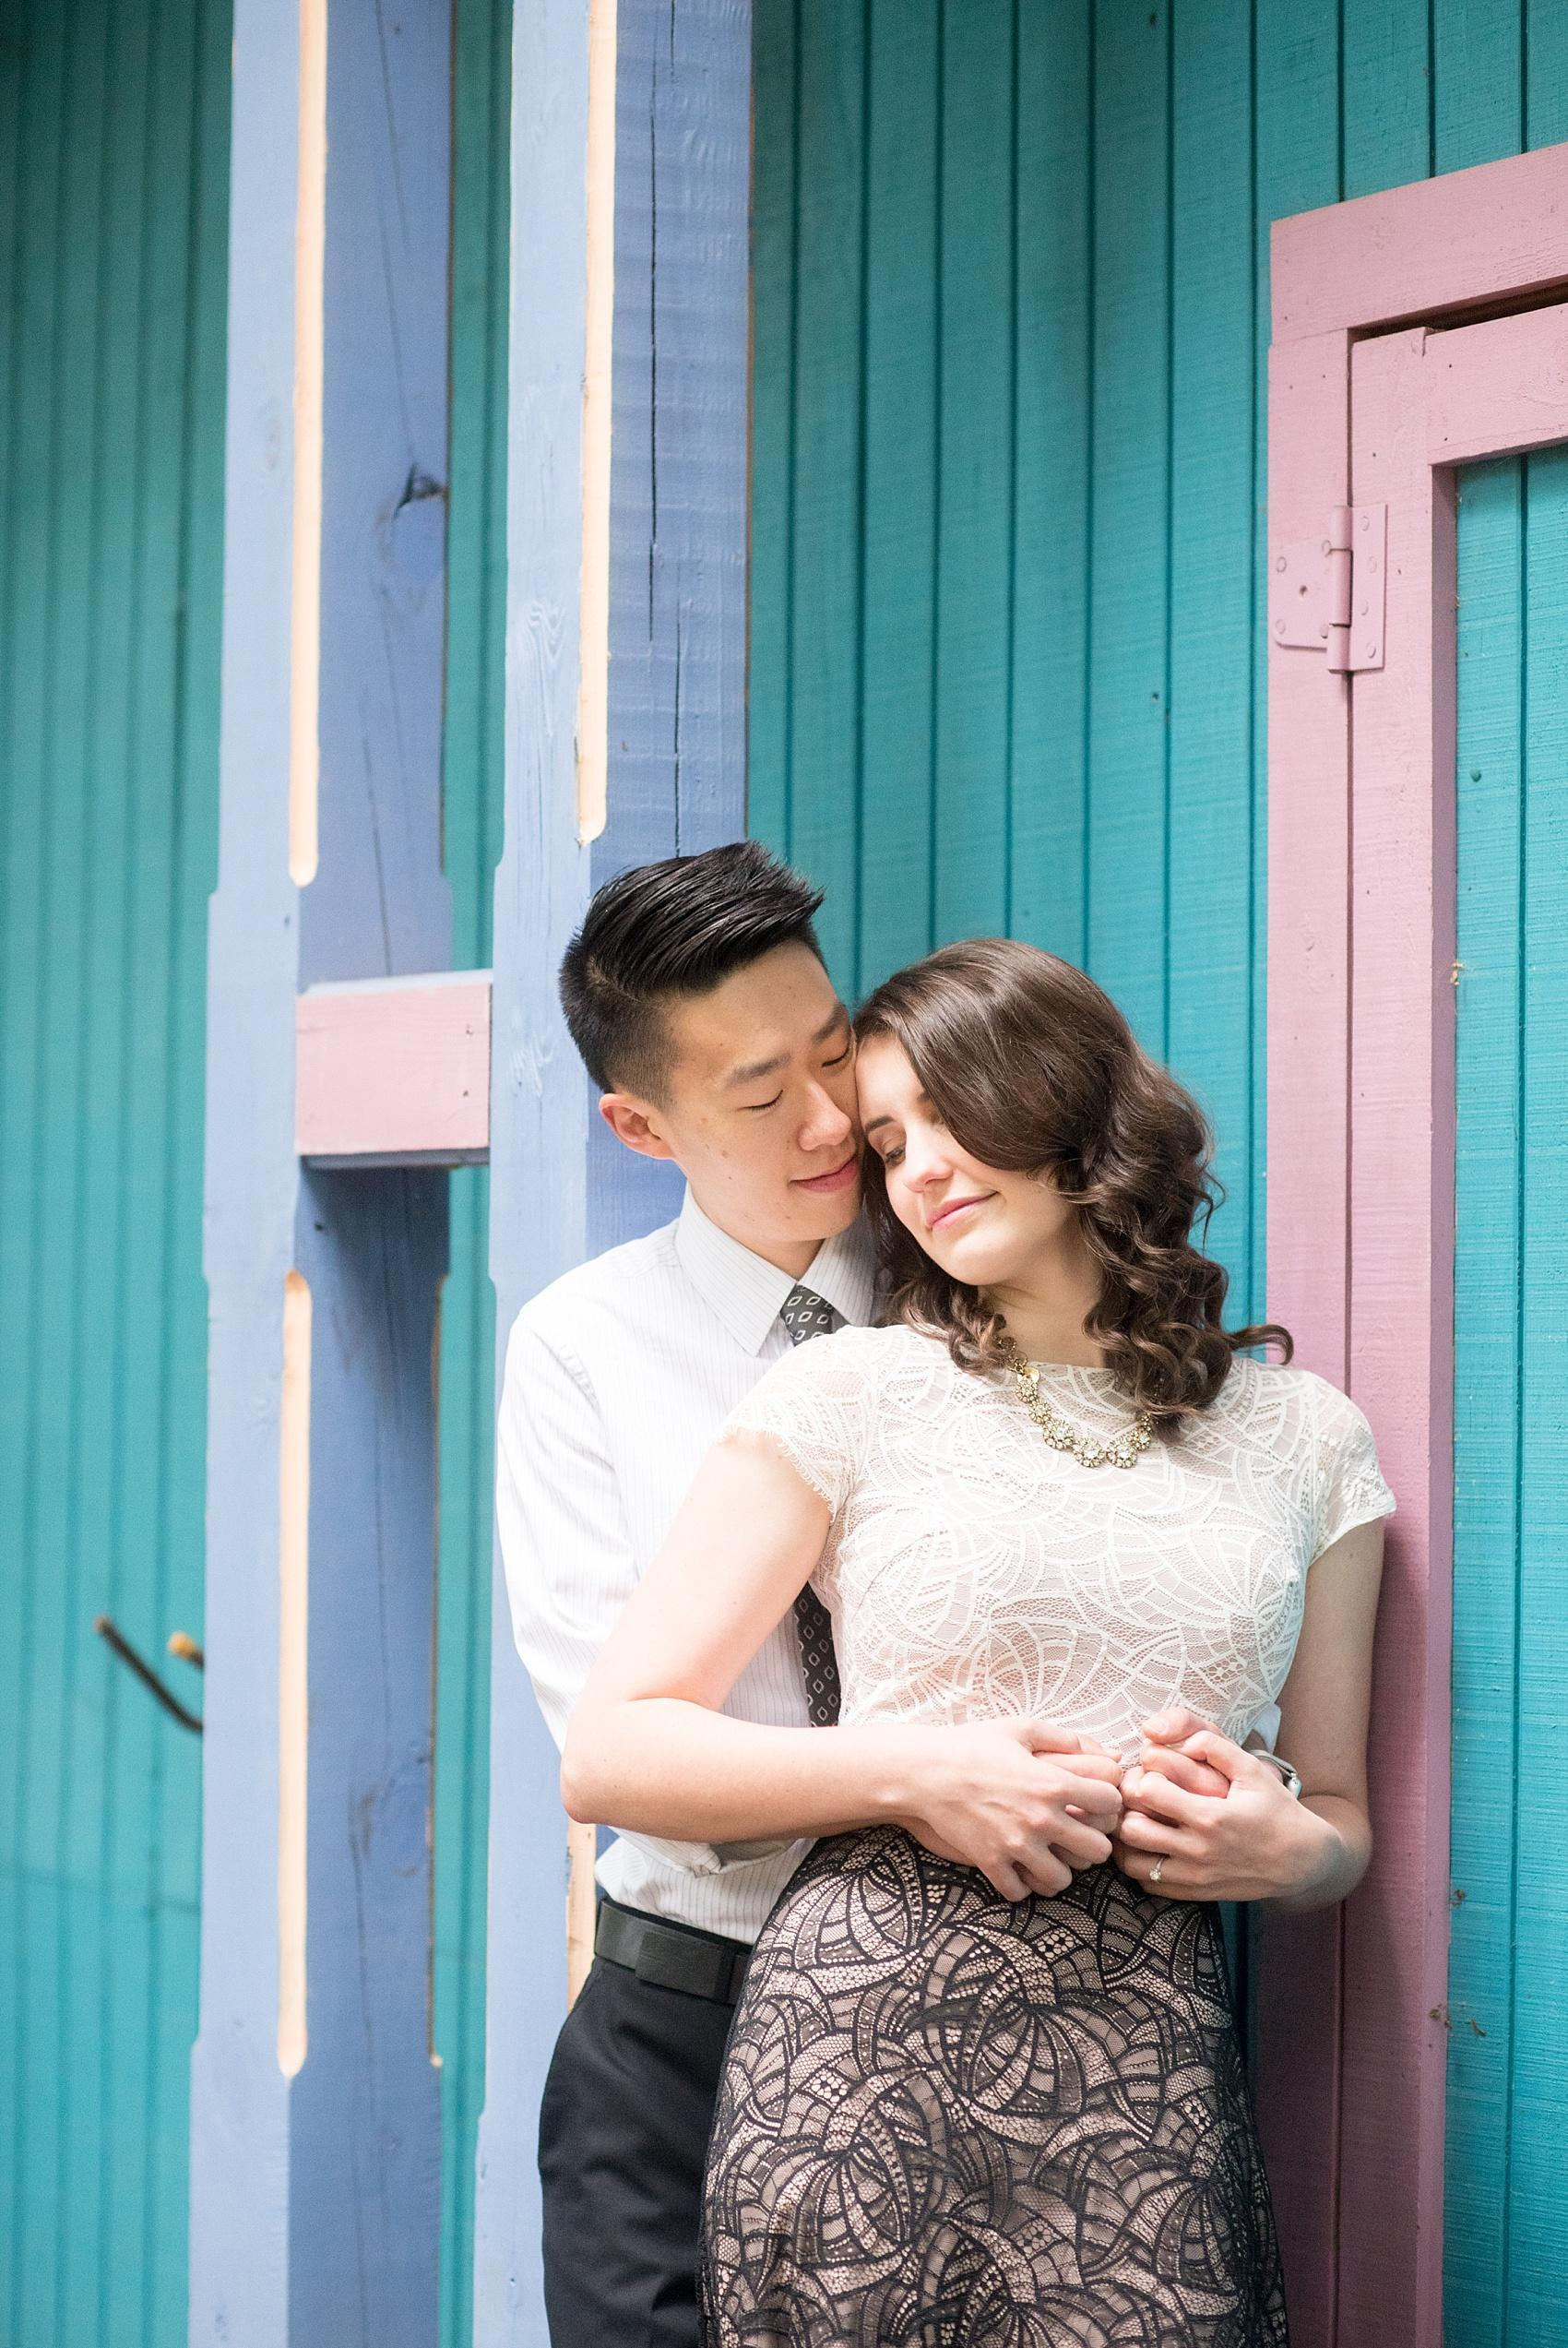 Raleigh North Carolina wedding photographer, Mikkel Paige Photography, photographs a romantic engagement session at Raulston Arboretum at NC State campus with Rent the Runway for the bride.